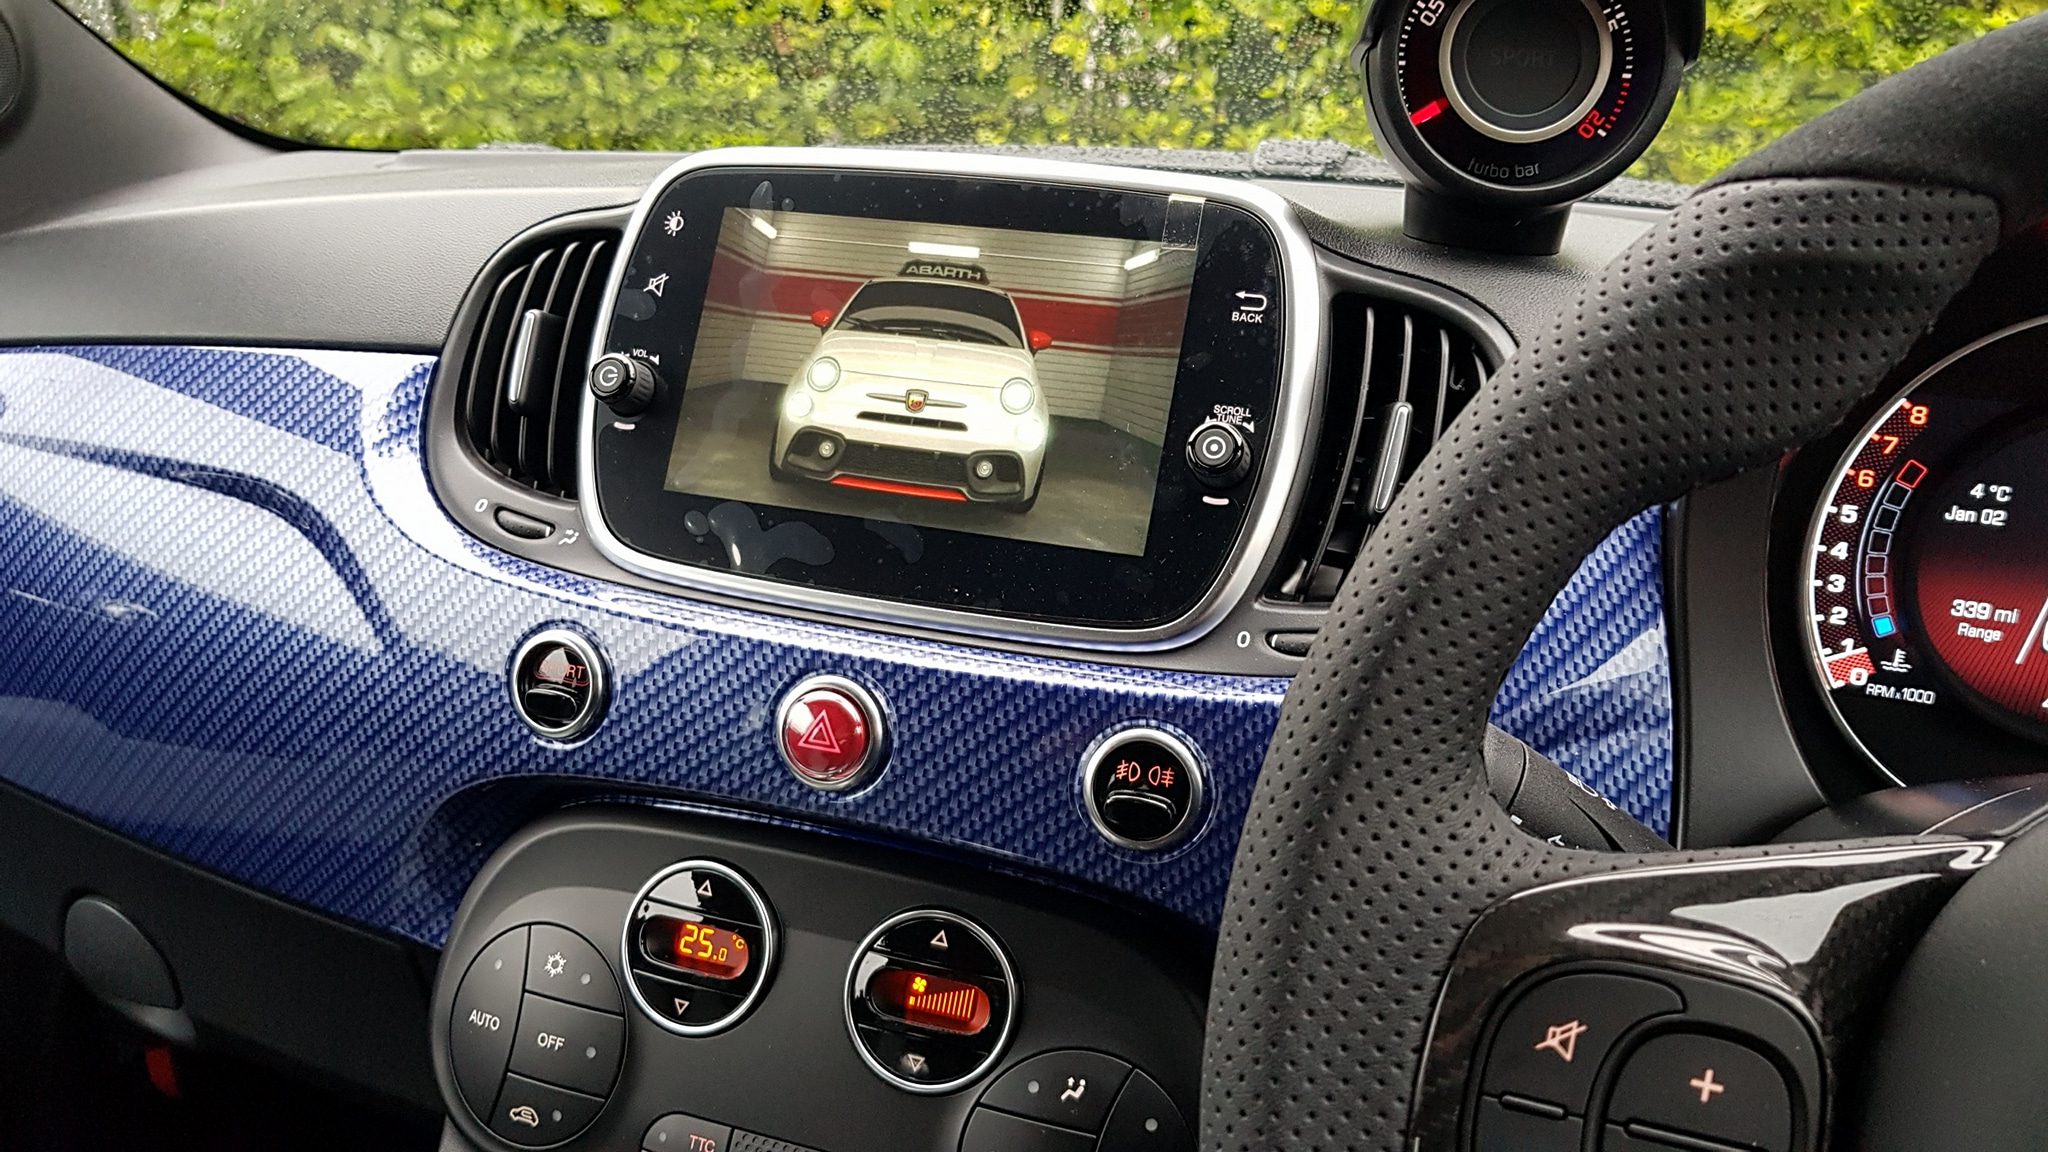 Fiat Abarth Autowatch Ghost